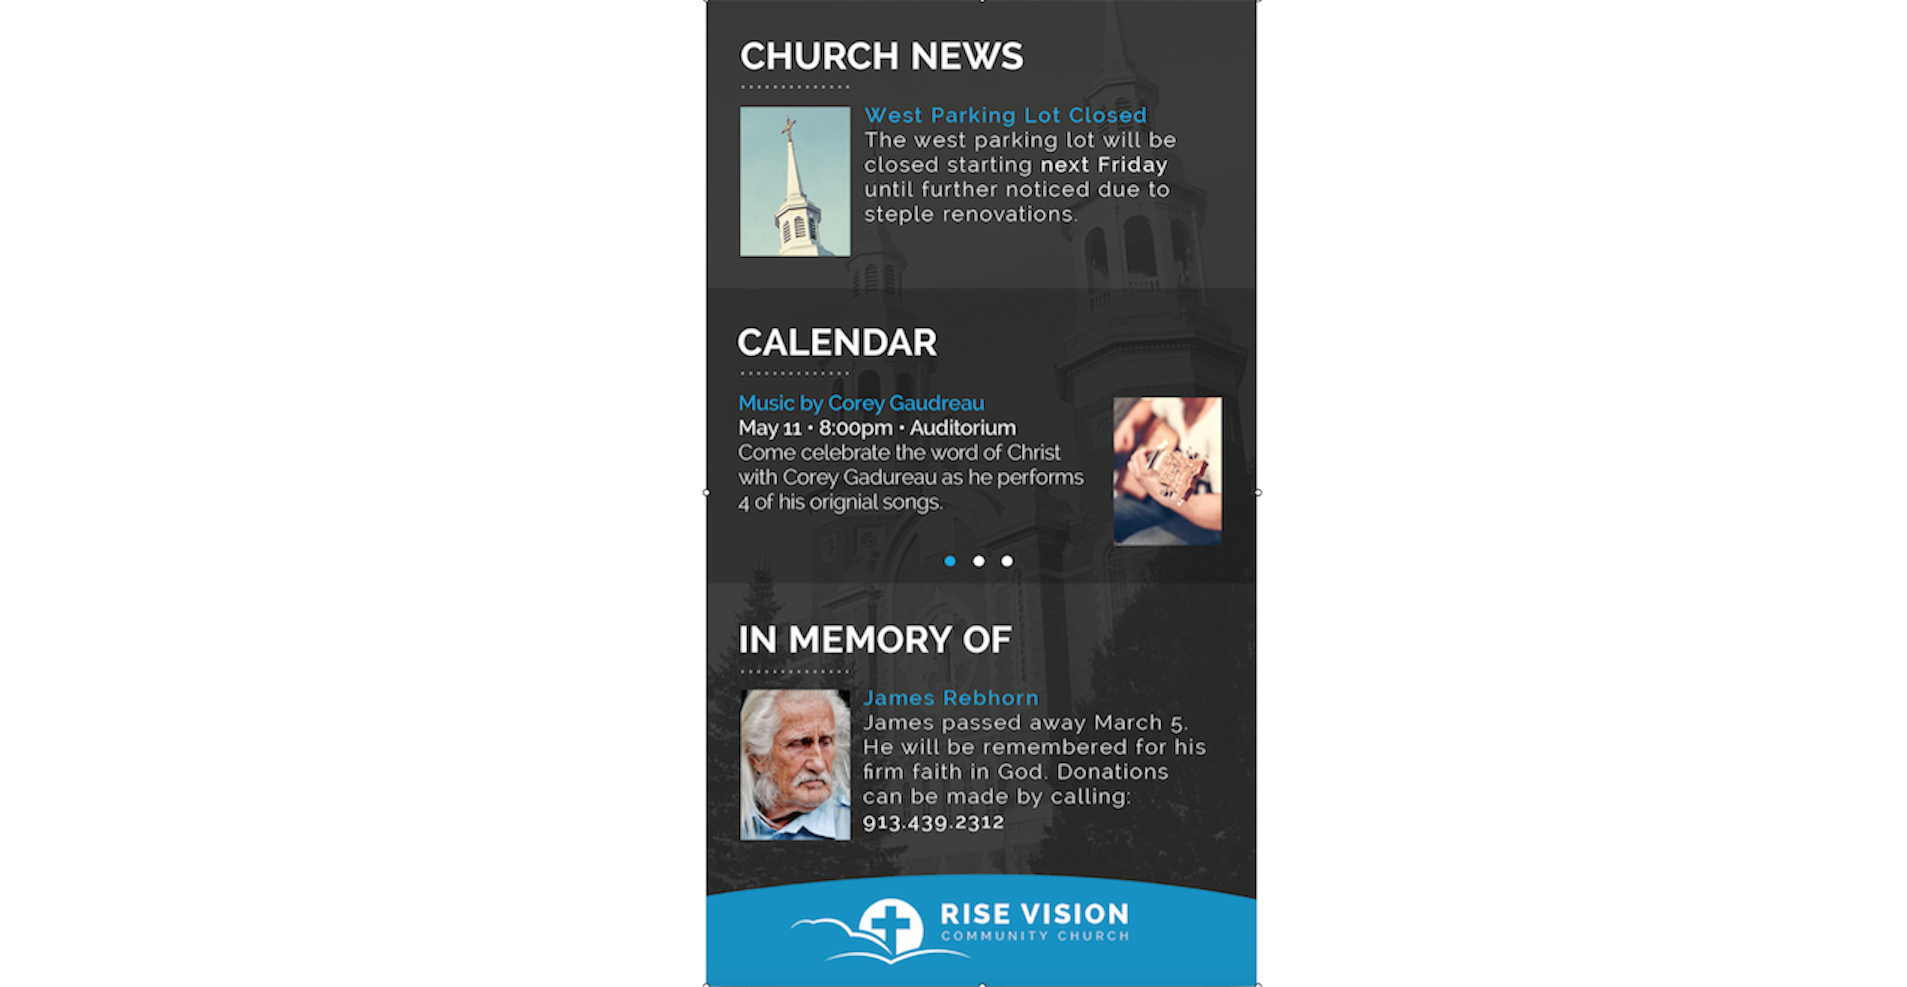 digital signage for churches in portrait mode